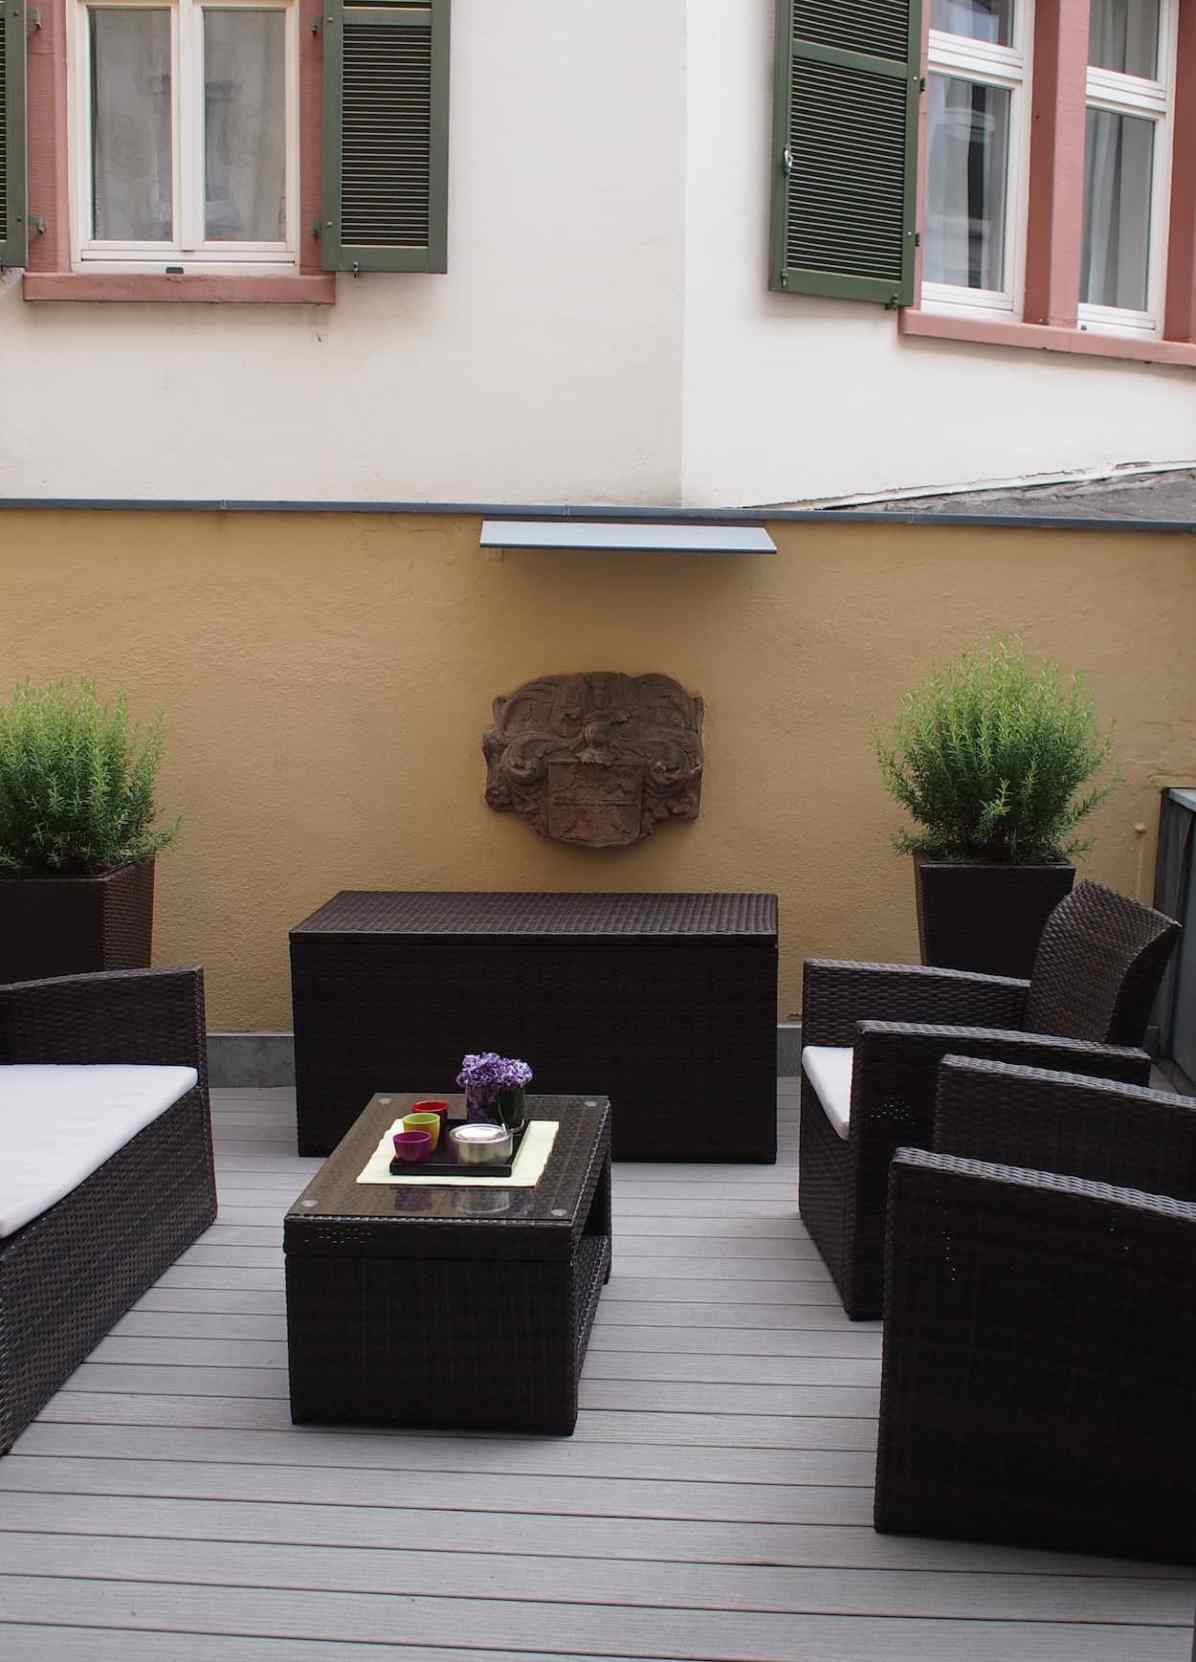 The upstairs terrace